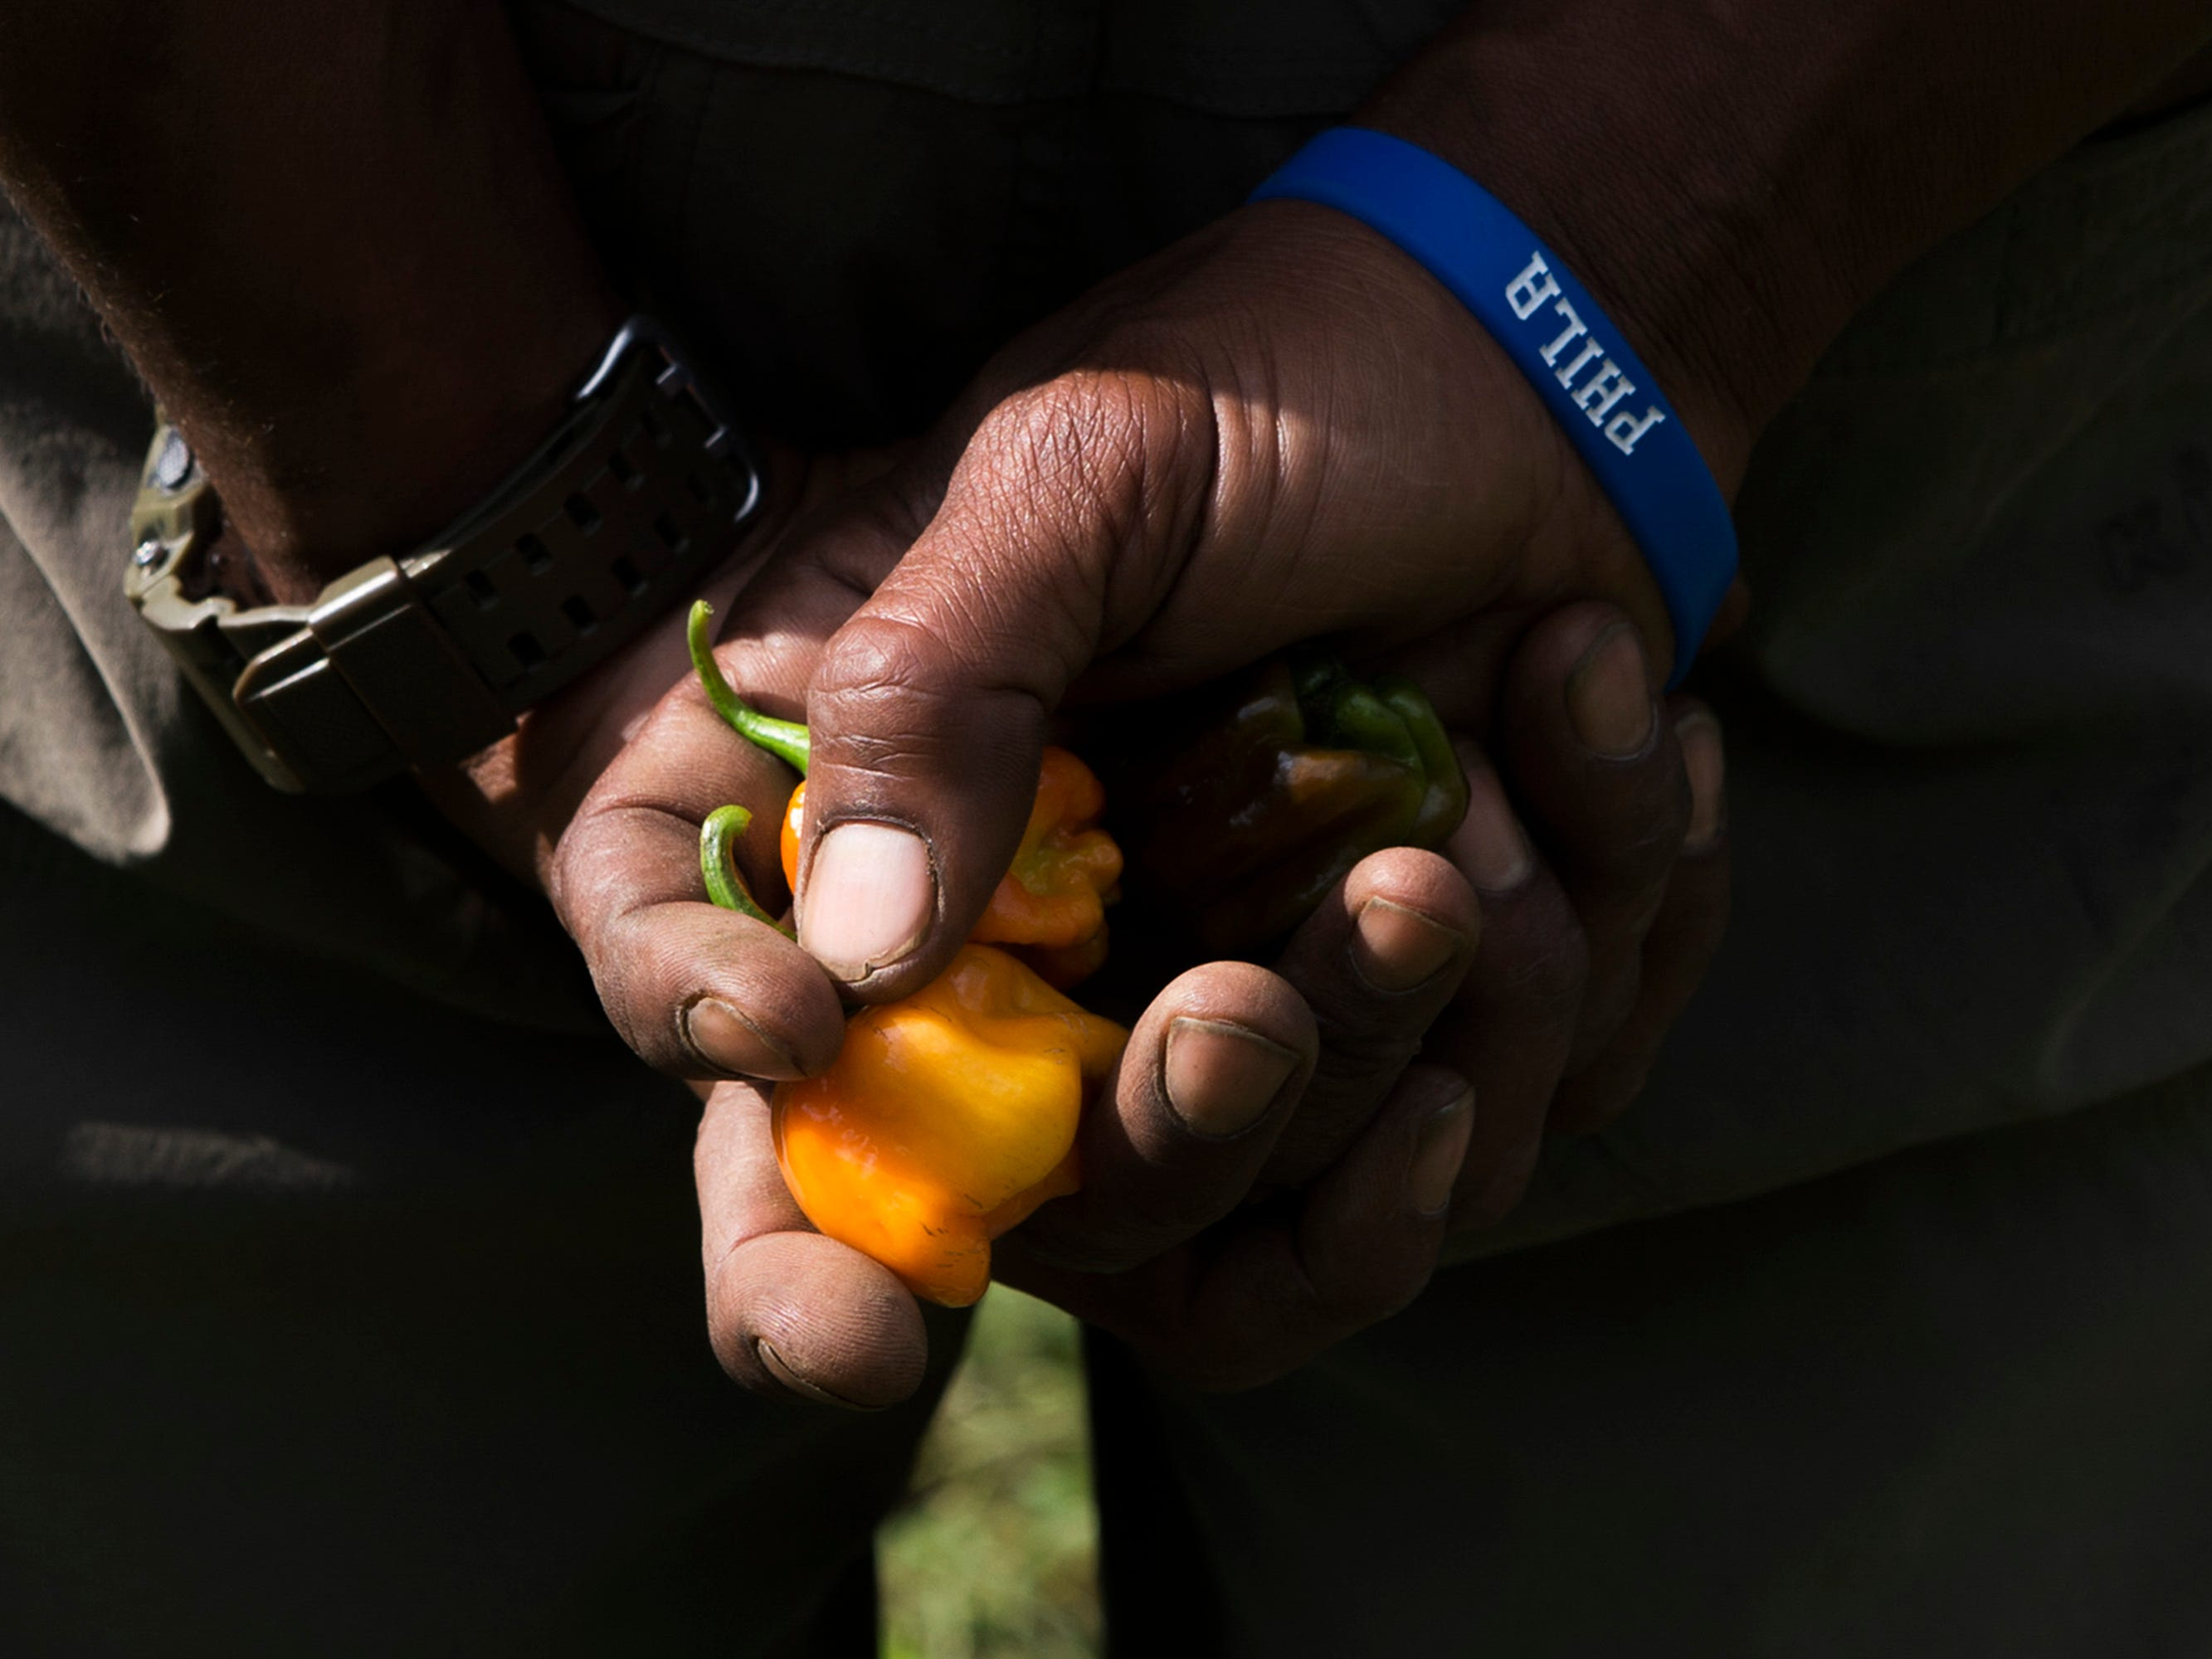 Micaiah Hall clutches a handfull of hot peppers on his farm Thursday, Aug. 23, 2018 in Lawnside, N.J.